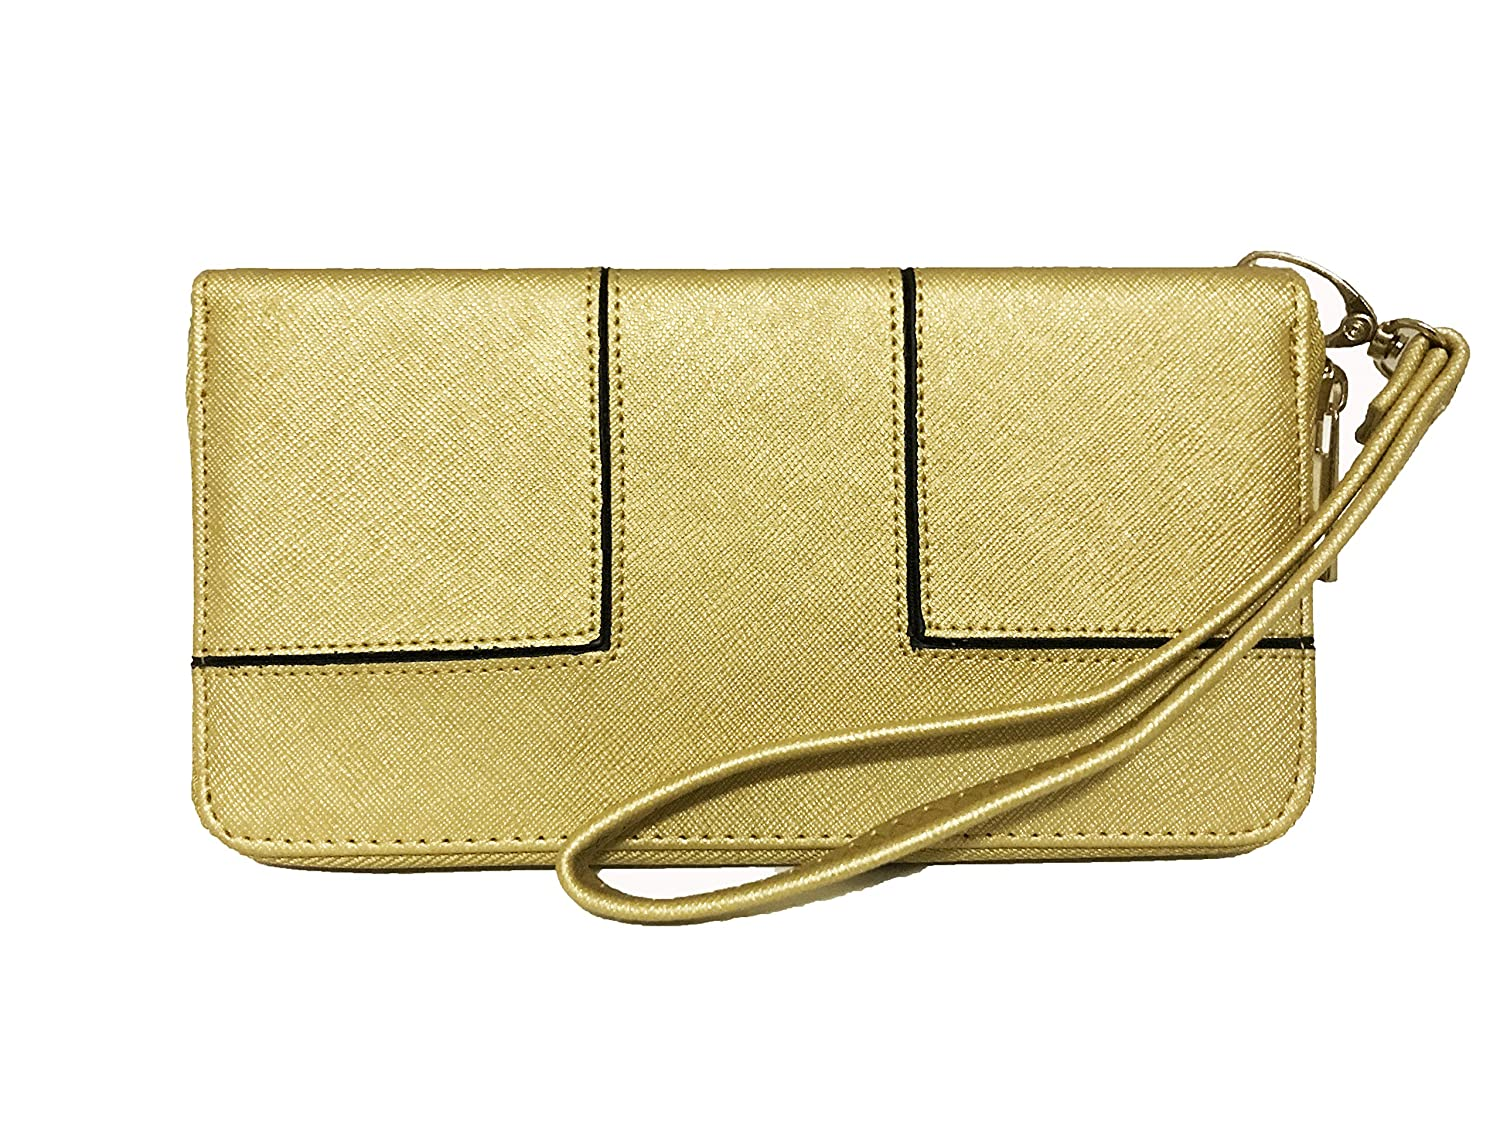 world-wide selection of real quality color brilliancy Women's Single Zip Around Saffiano Leather Wristlet Clutch Organizer Wallet  (Gold)